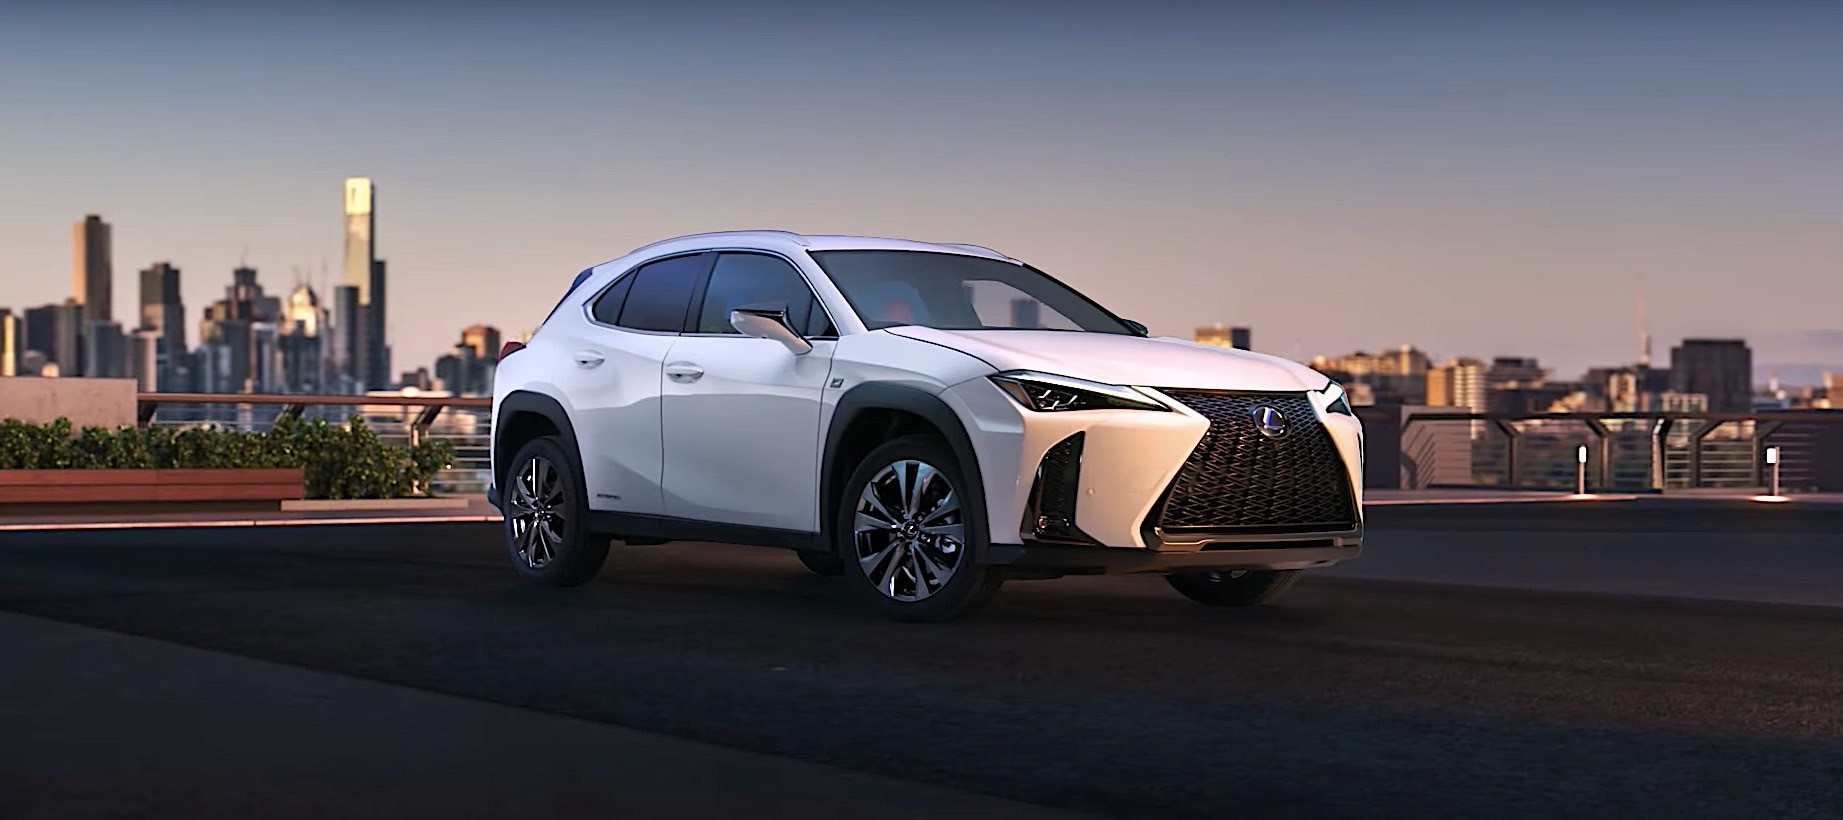 https://s1.cdn.autoevolution.com/images/news/gallery/lexus-ux-first-official-images-released_2.jpg